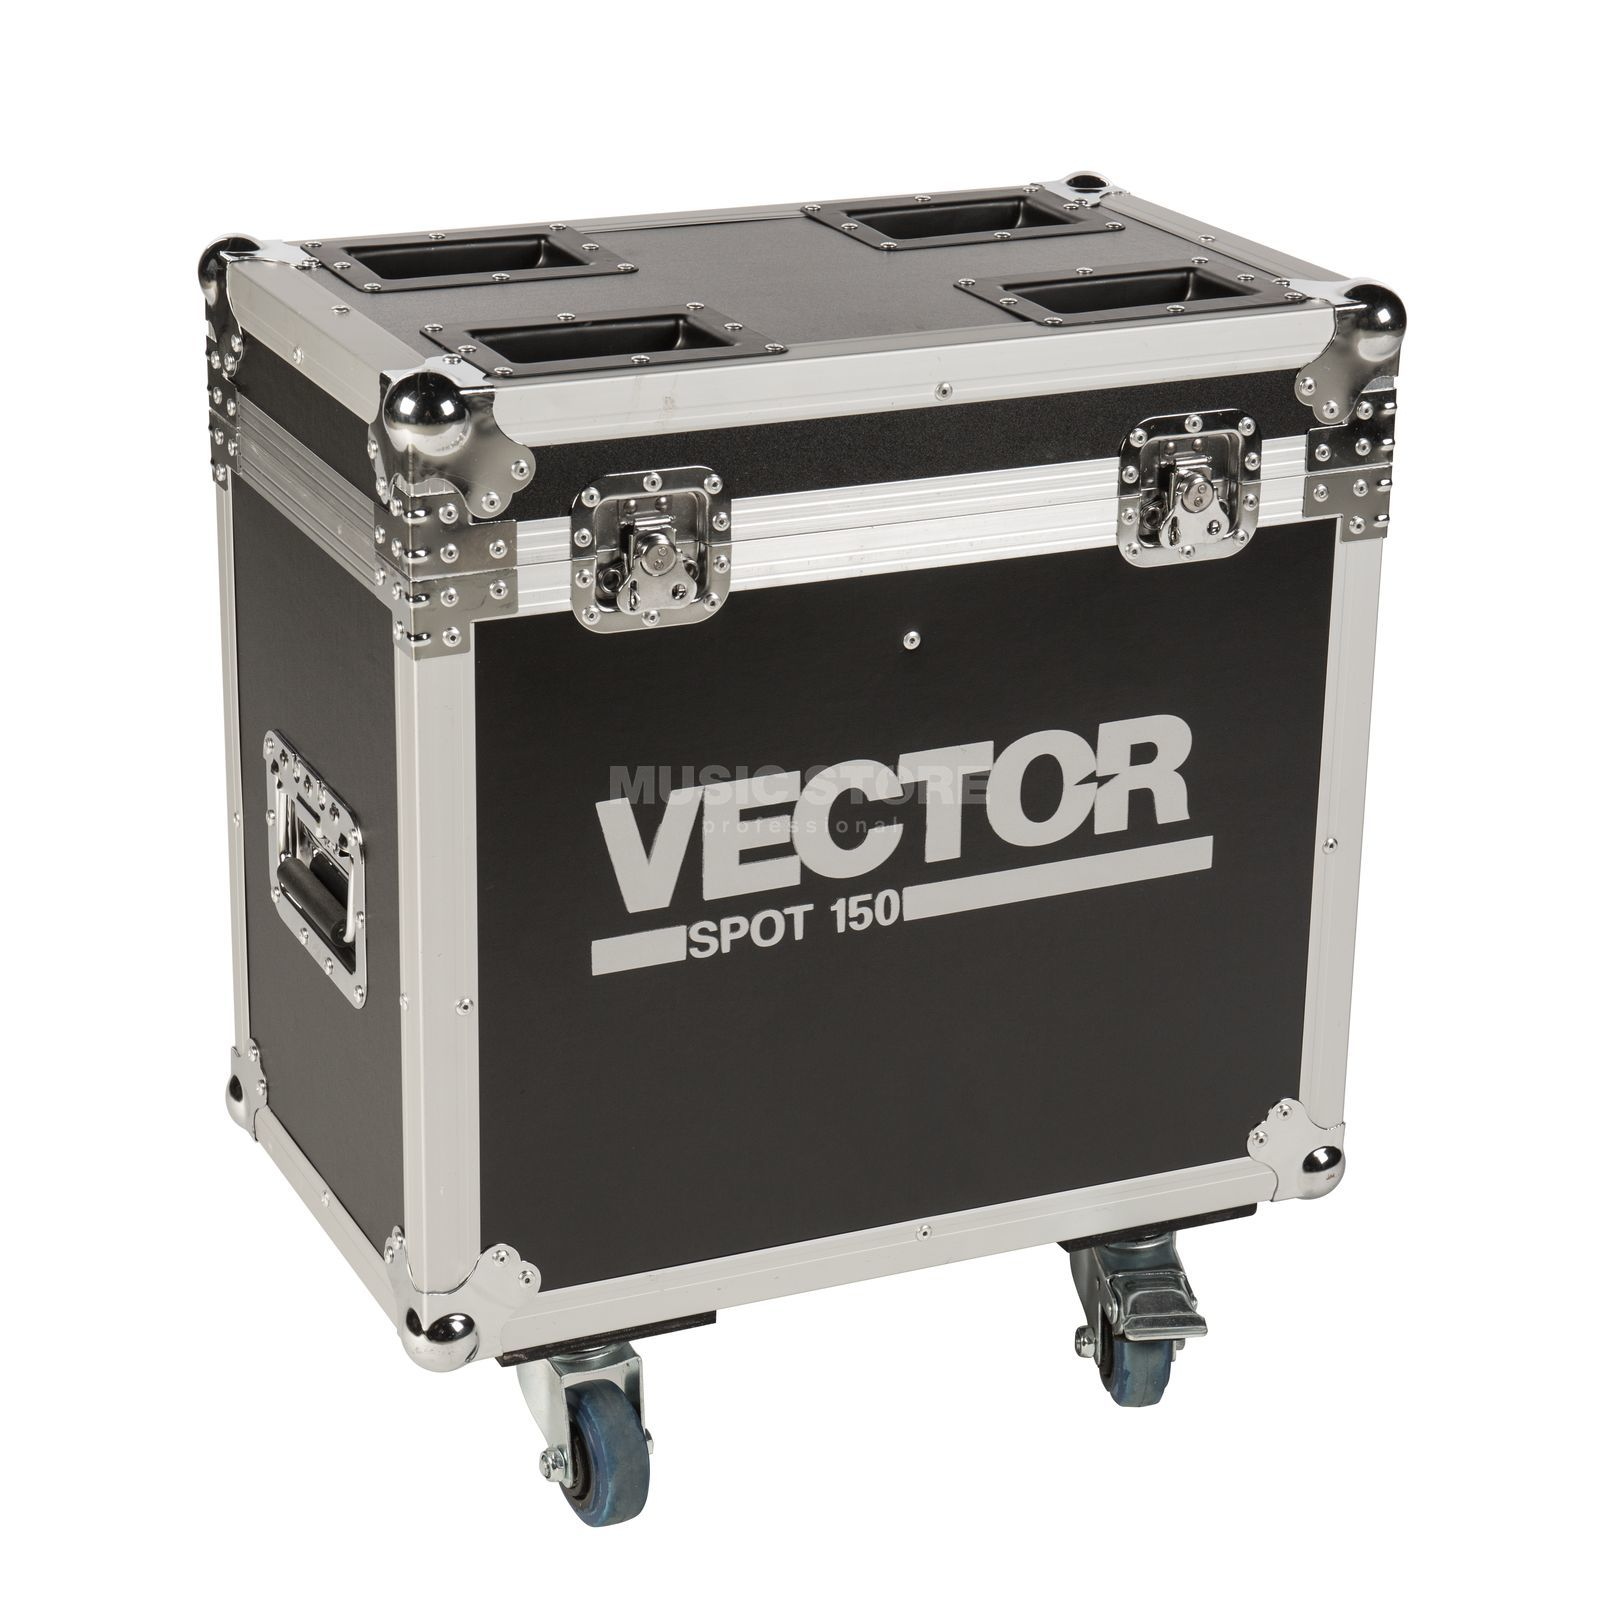 lightmaXX TOUR CASE - 2x VECTOR SPOT 150 Product Image